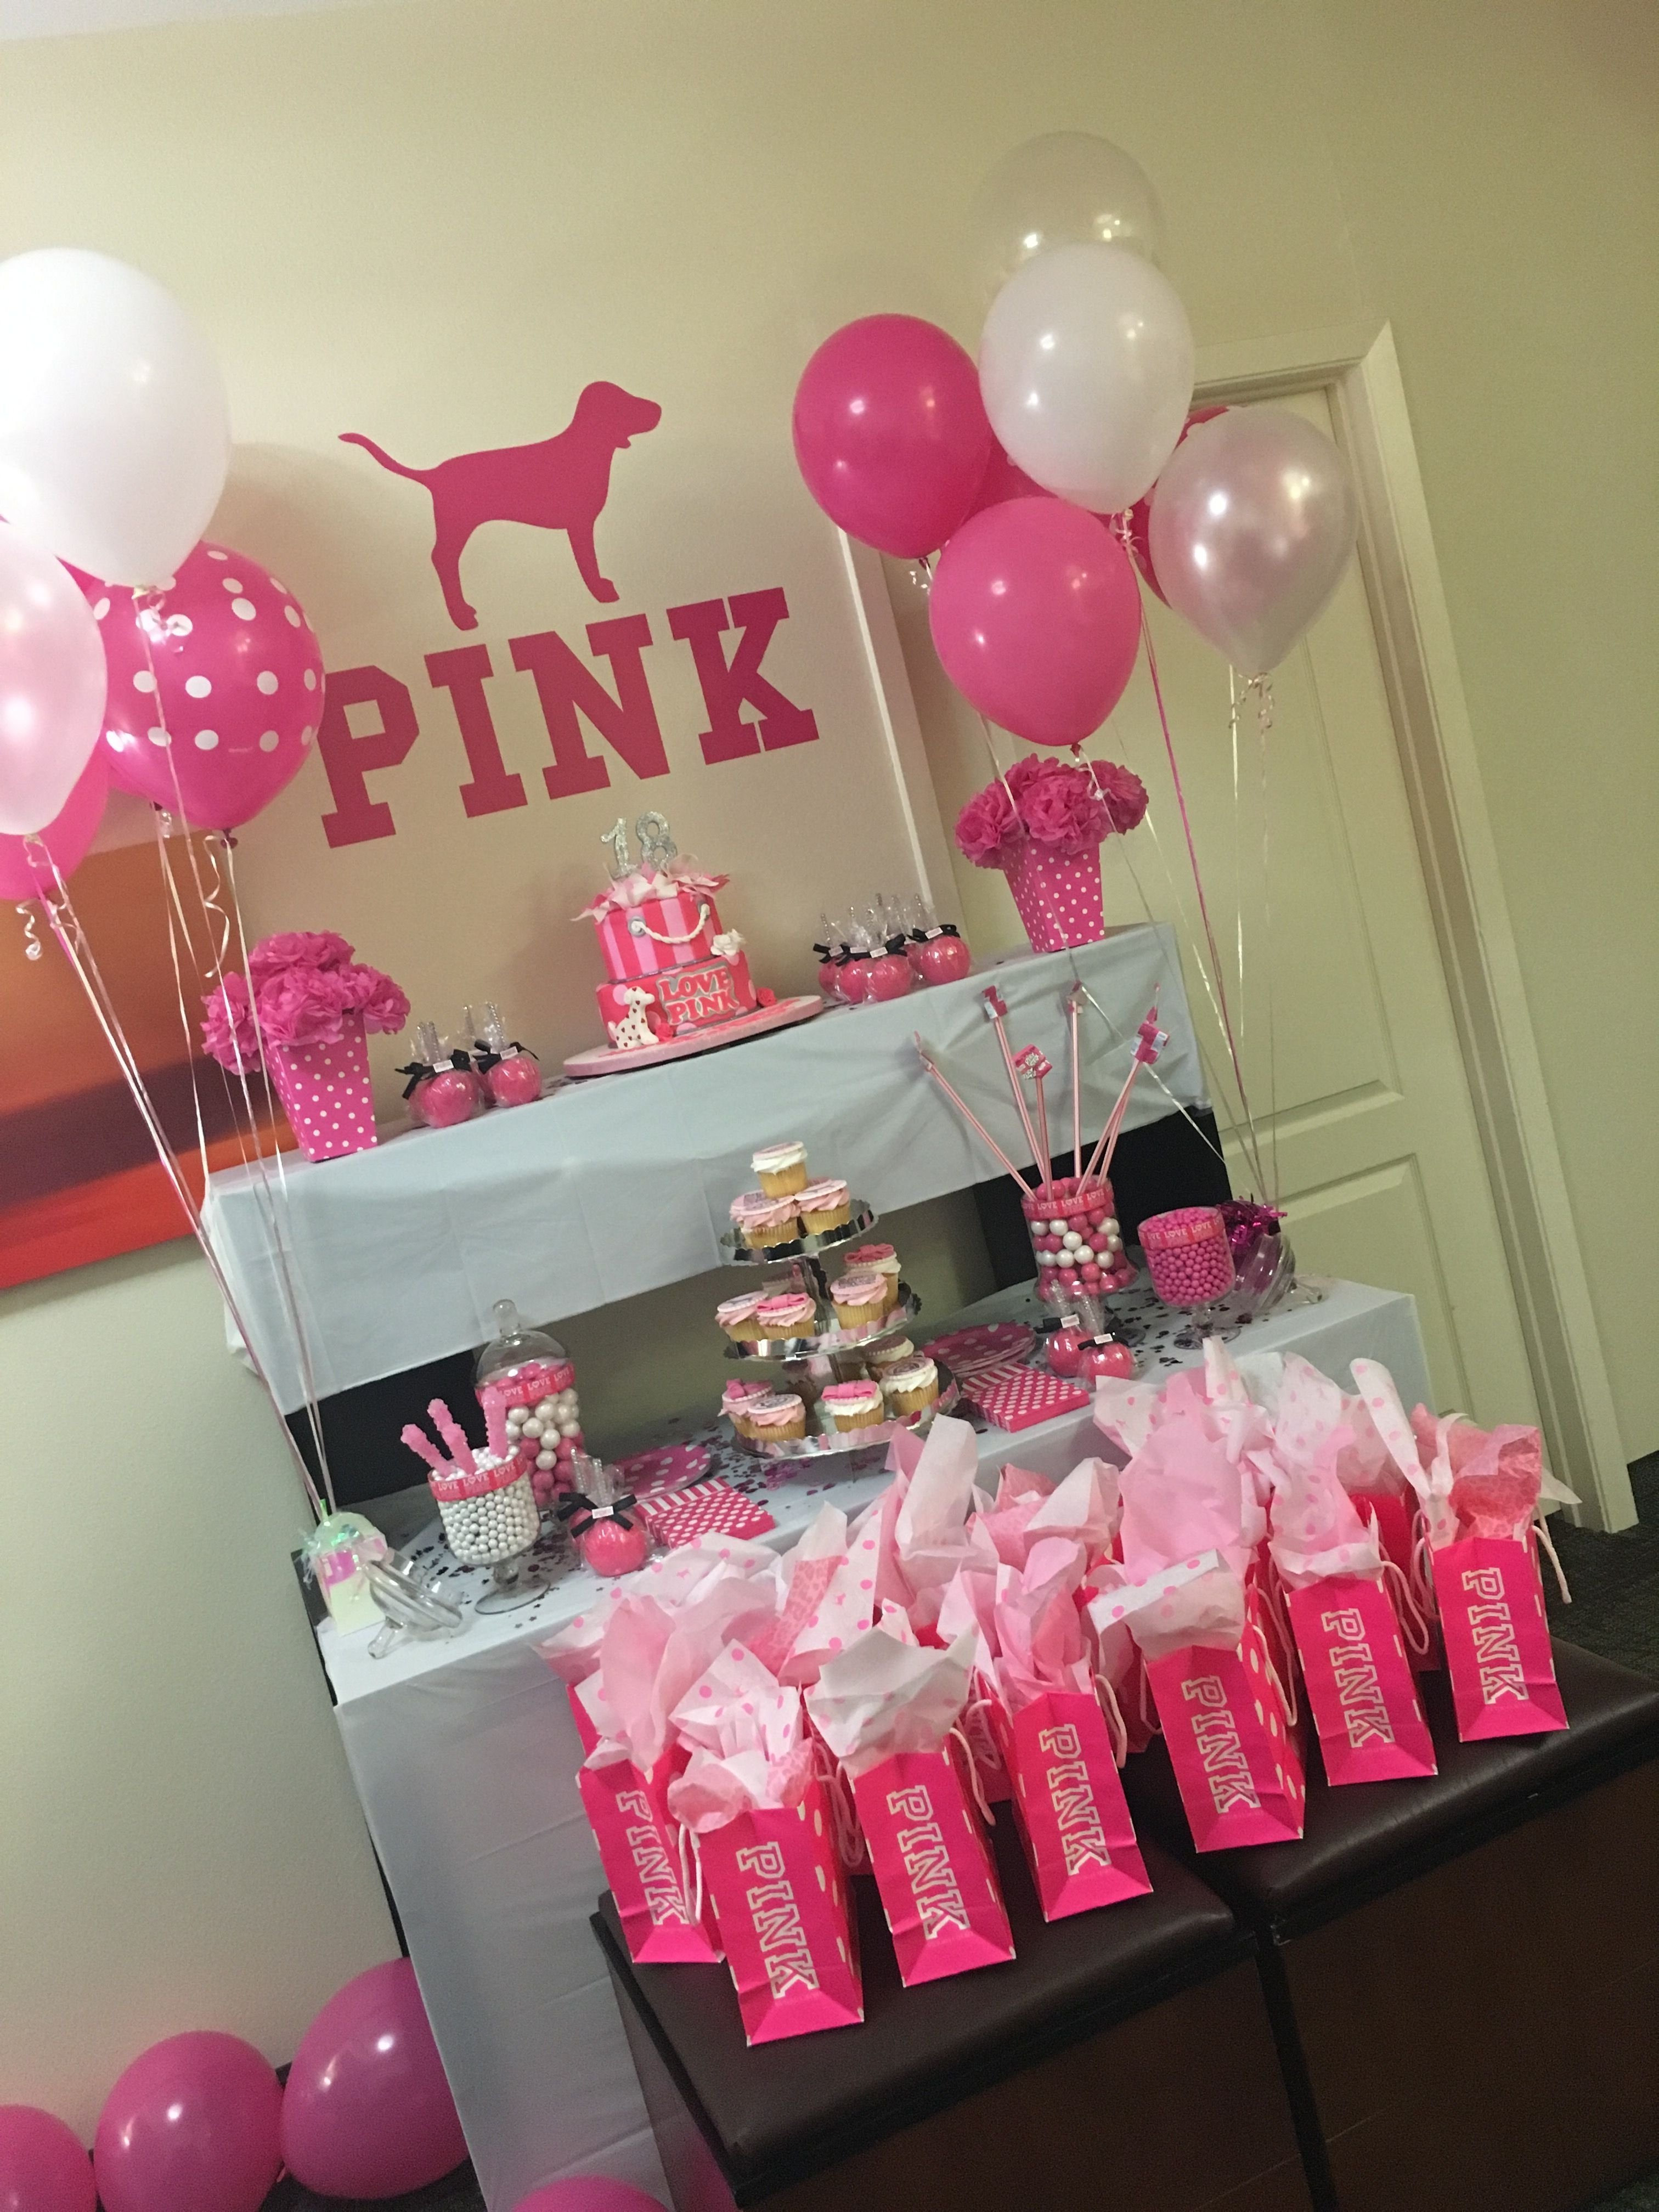 10 Nice Birthday Party Ideas For Teenage Girls 14 pink party pinteres 3